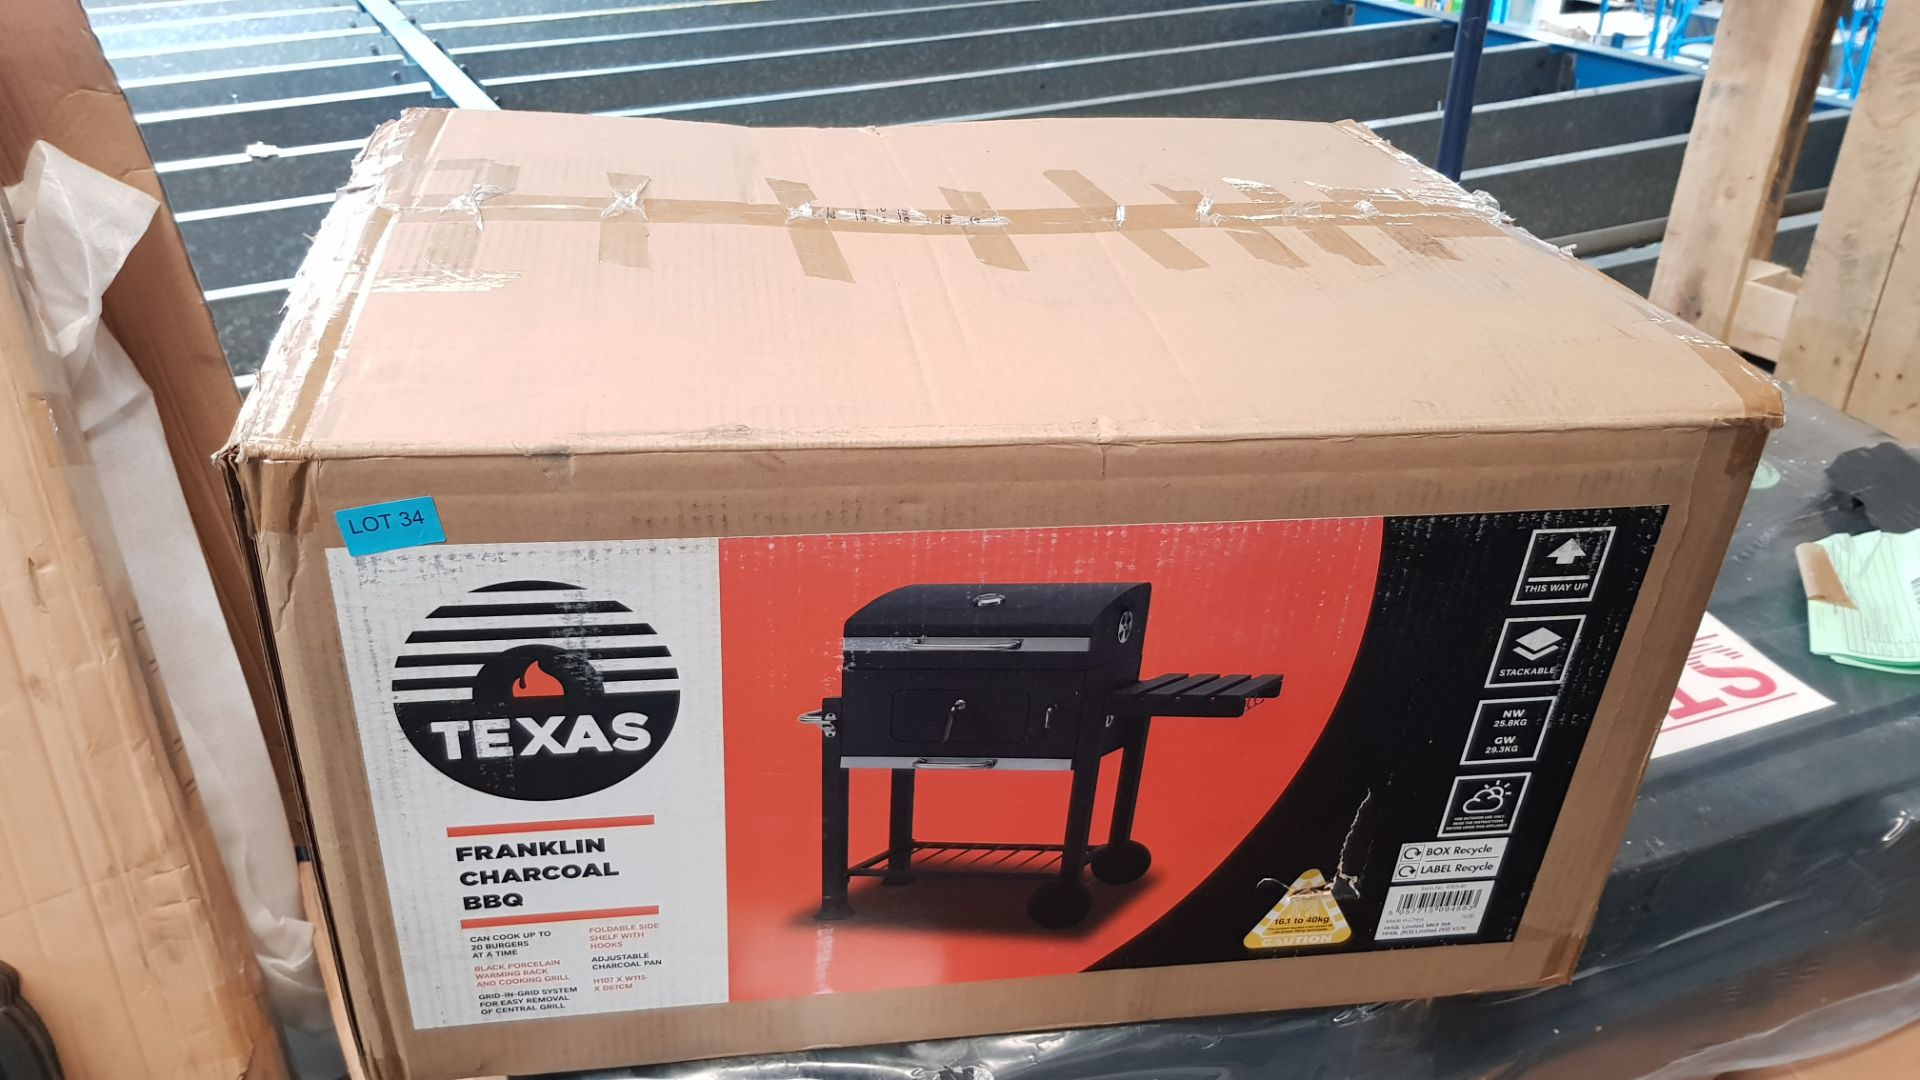 (P10) 1x Texas Franklin Charcoal BBQ. RRP £180.00. Unit Appears Unused, As New, Contents Have Not P - Image 3 of 4